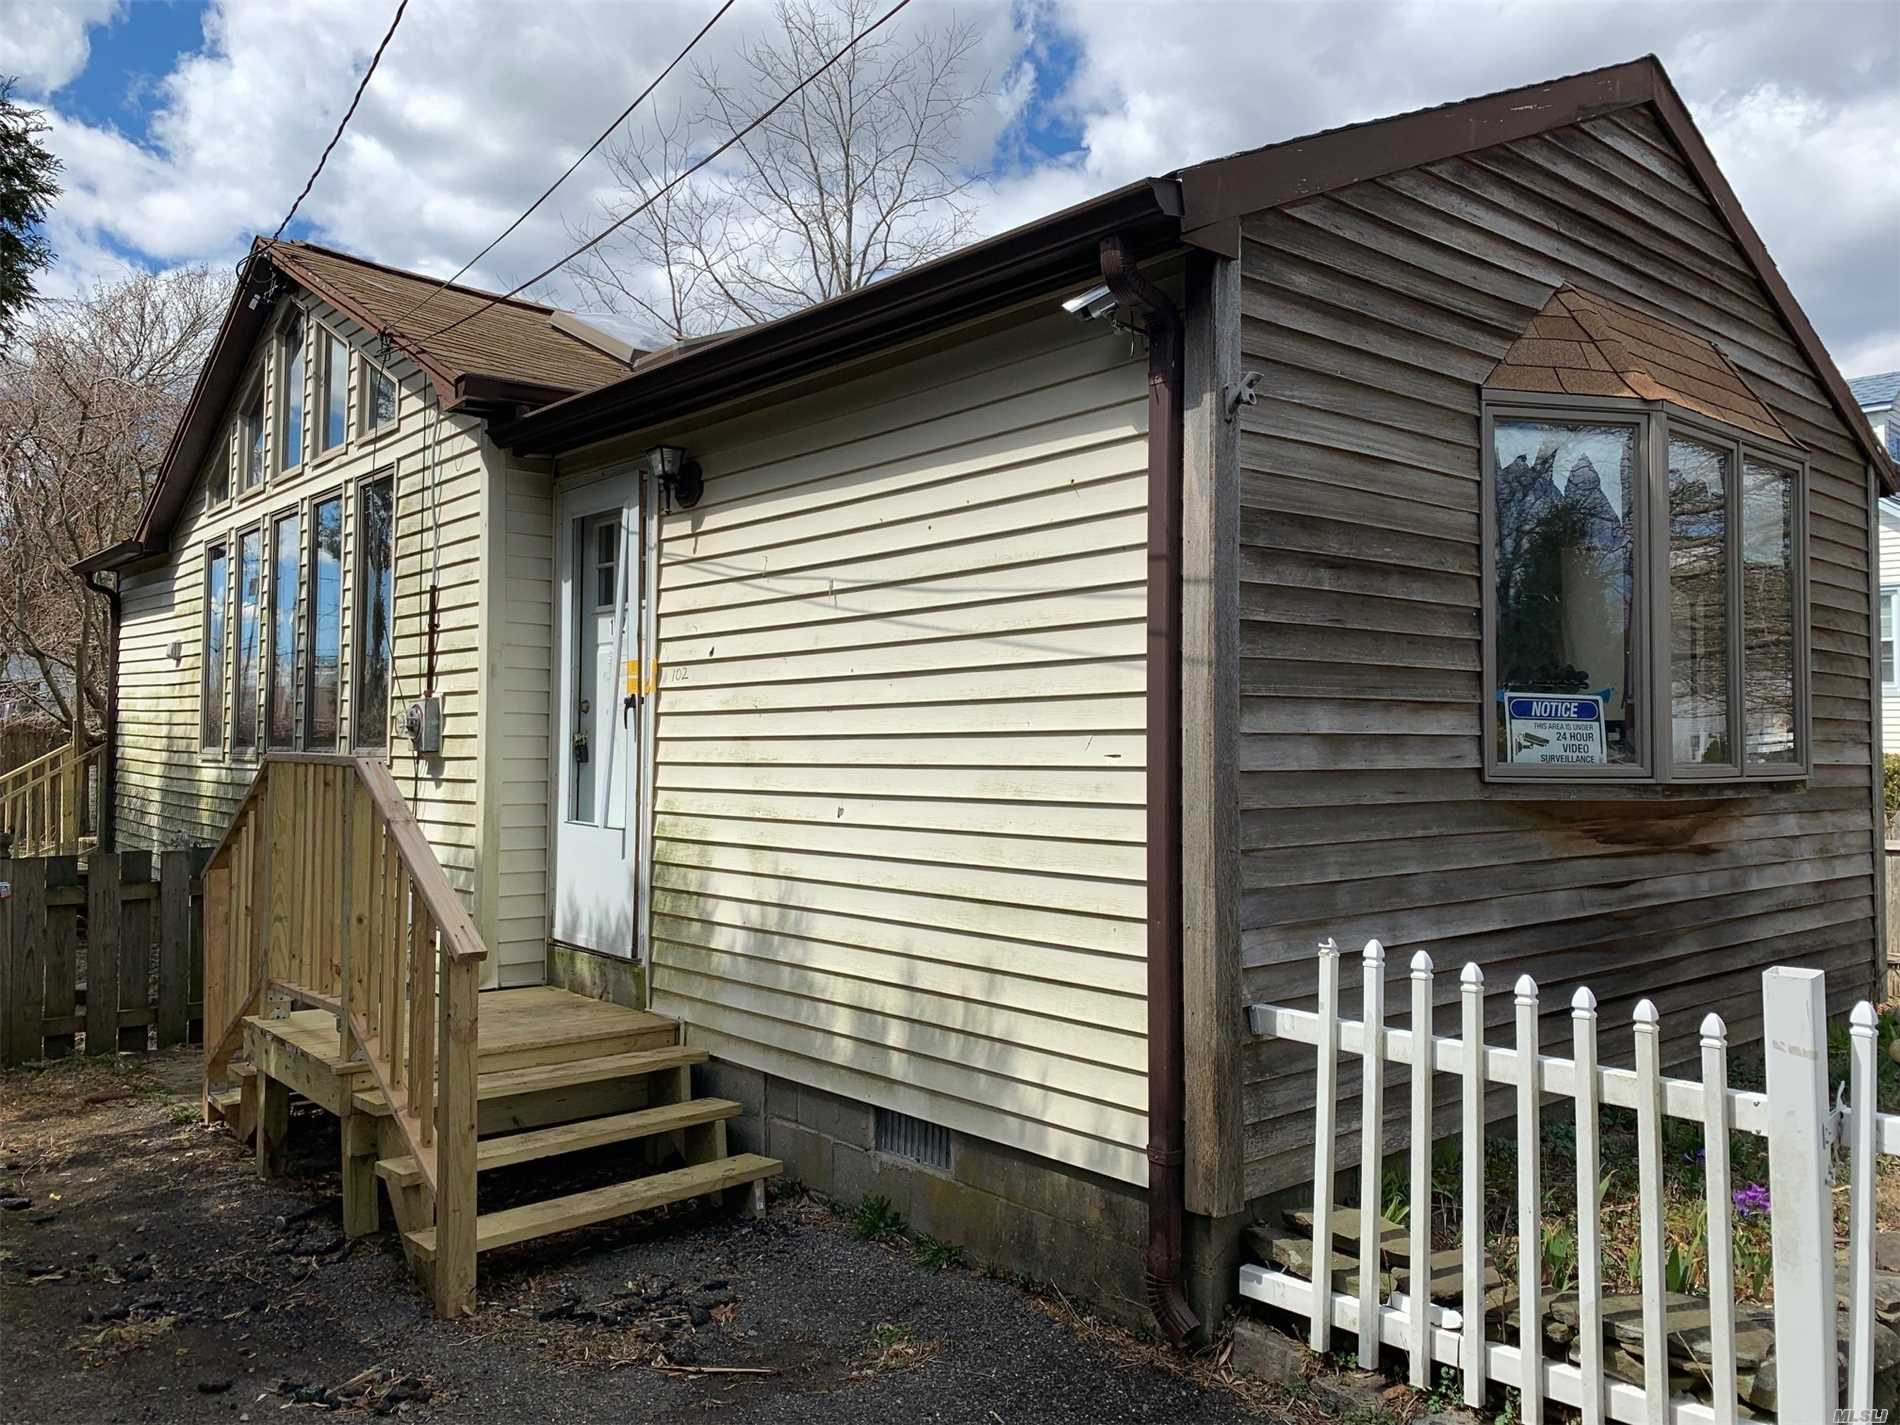 Vacant Foreclosure. Cash Only. Perfect Rental Property With Low taxes. New Deck, Updated Bathroom. Contract Vendee.